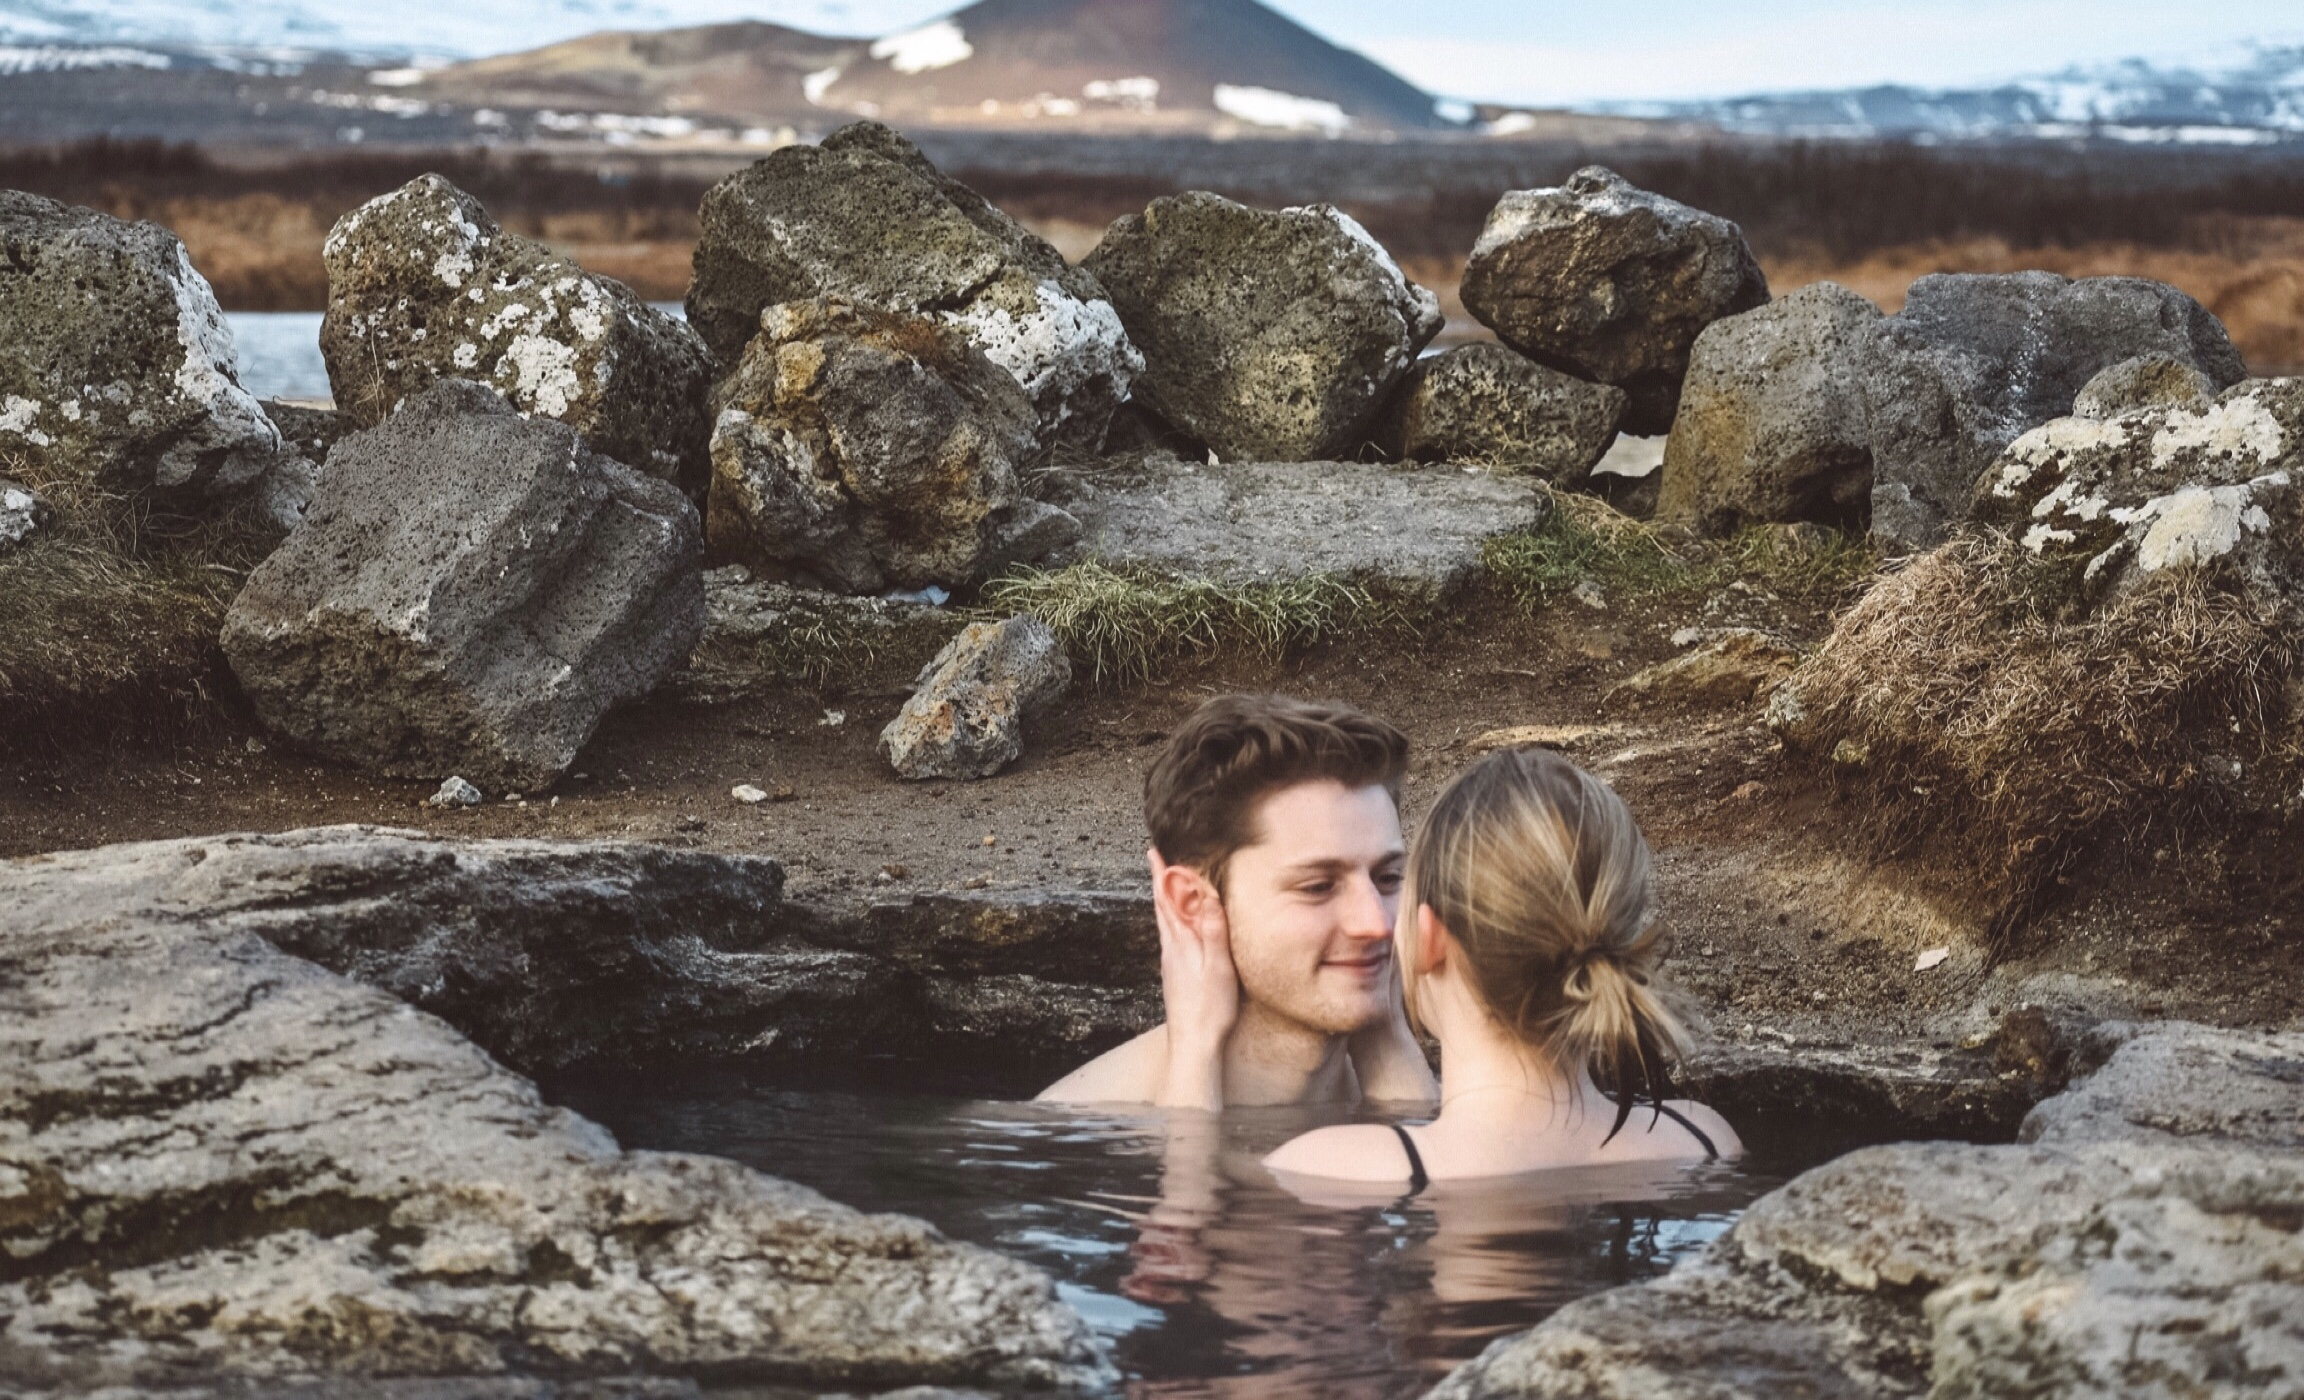 Landbrotalaug Iceland Hot Spring Guide 2019